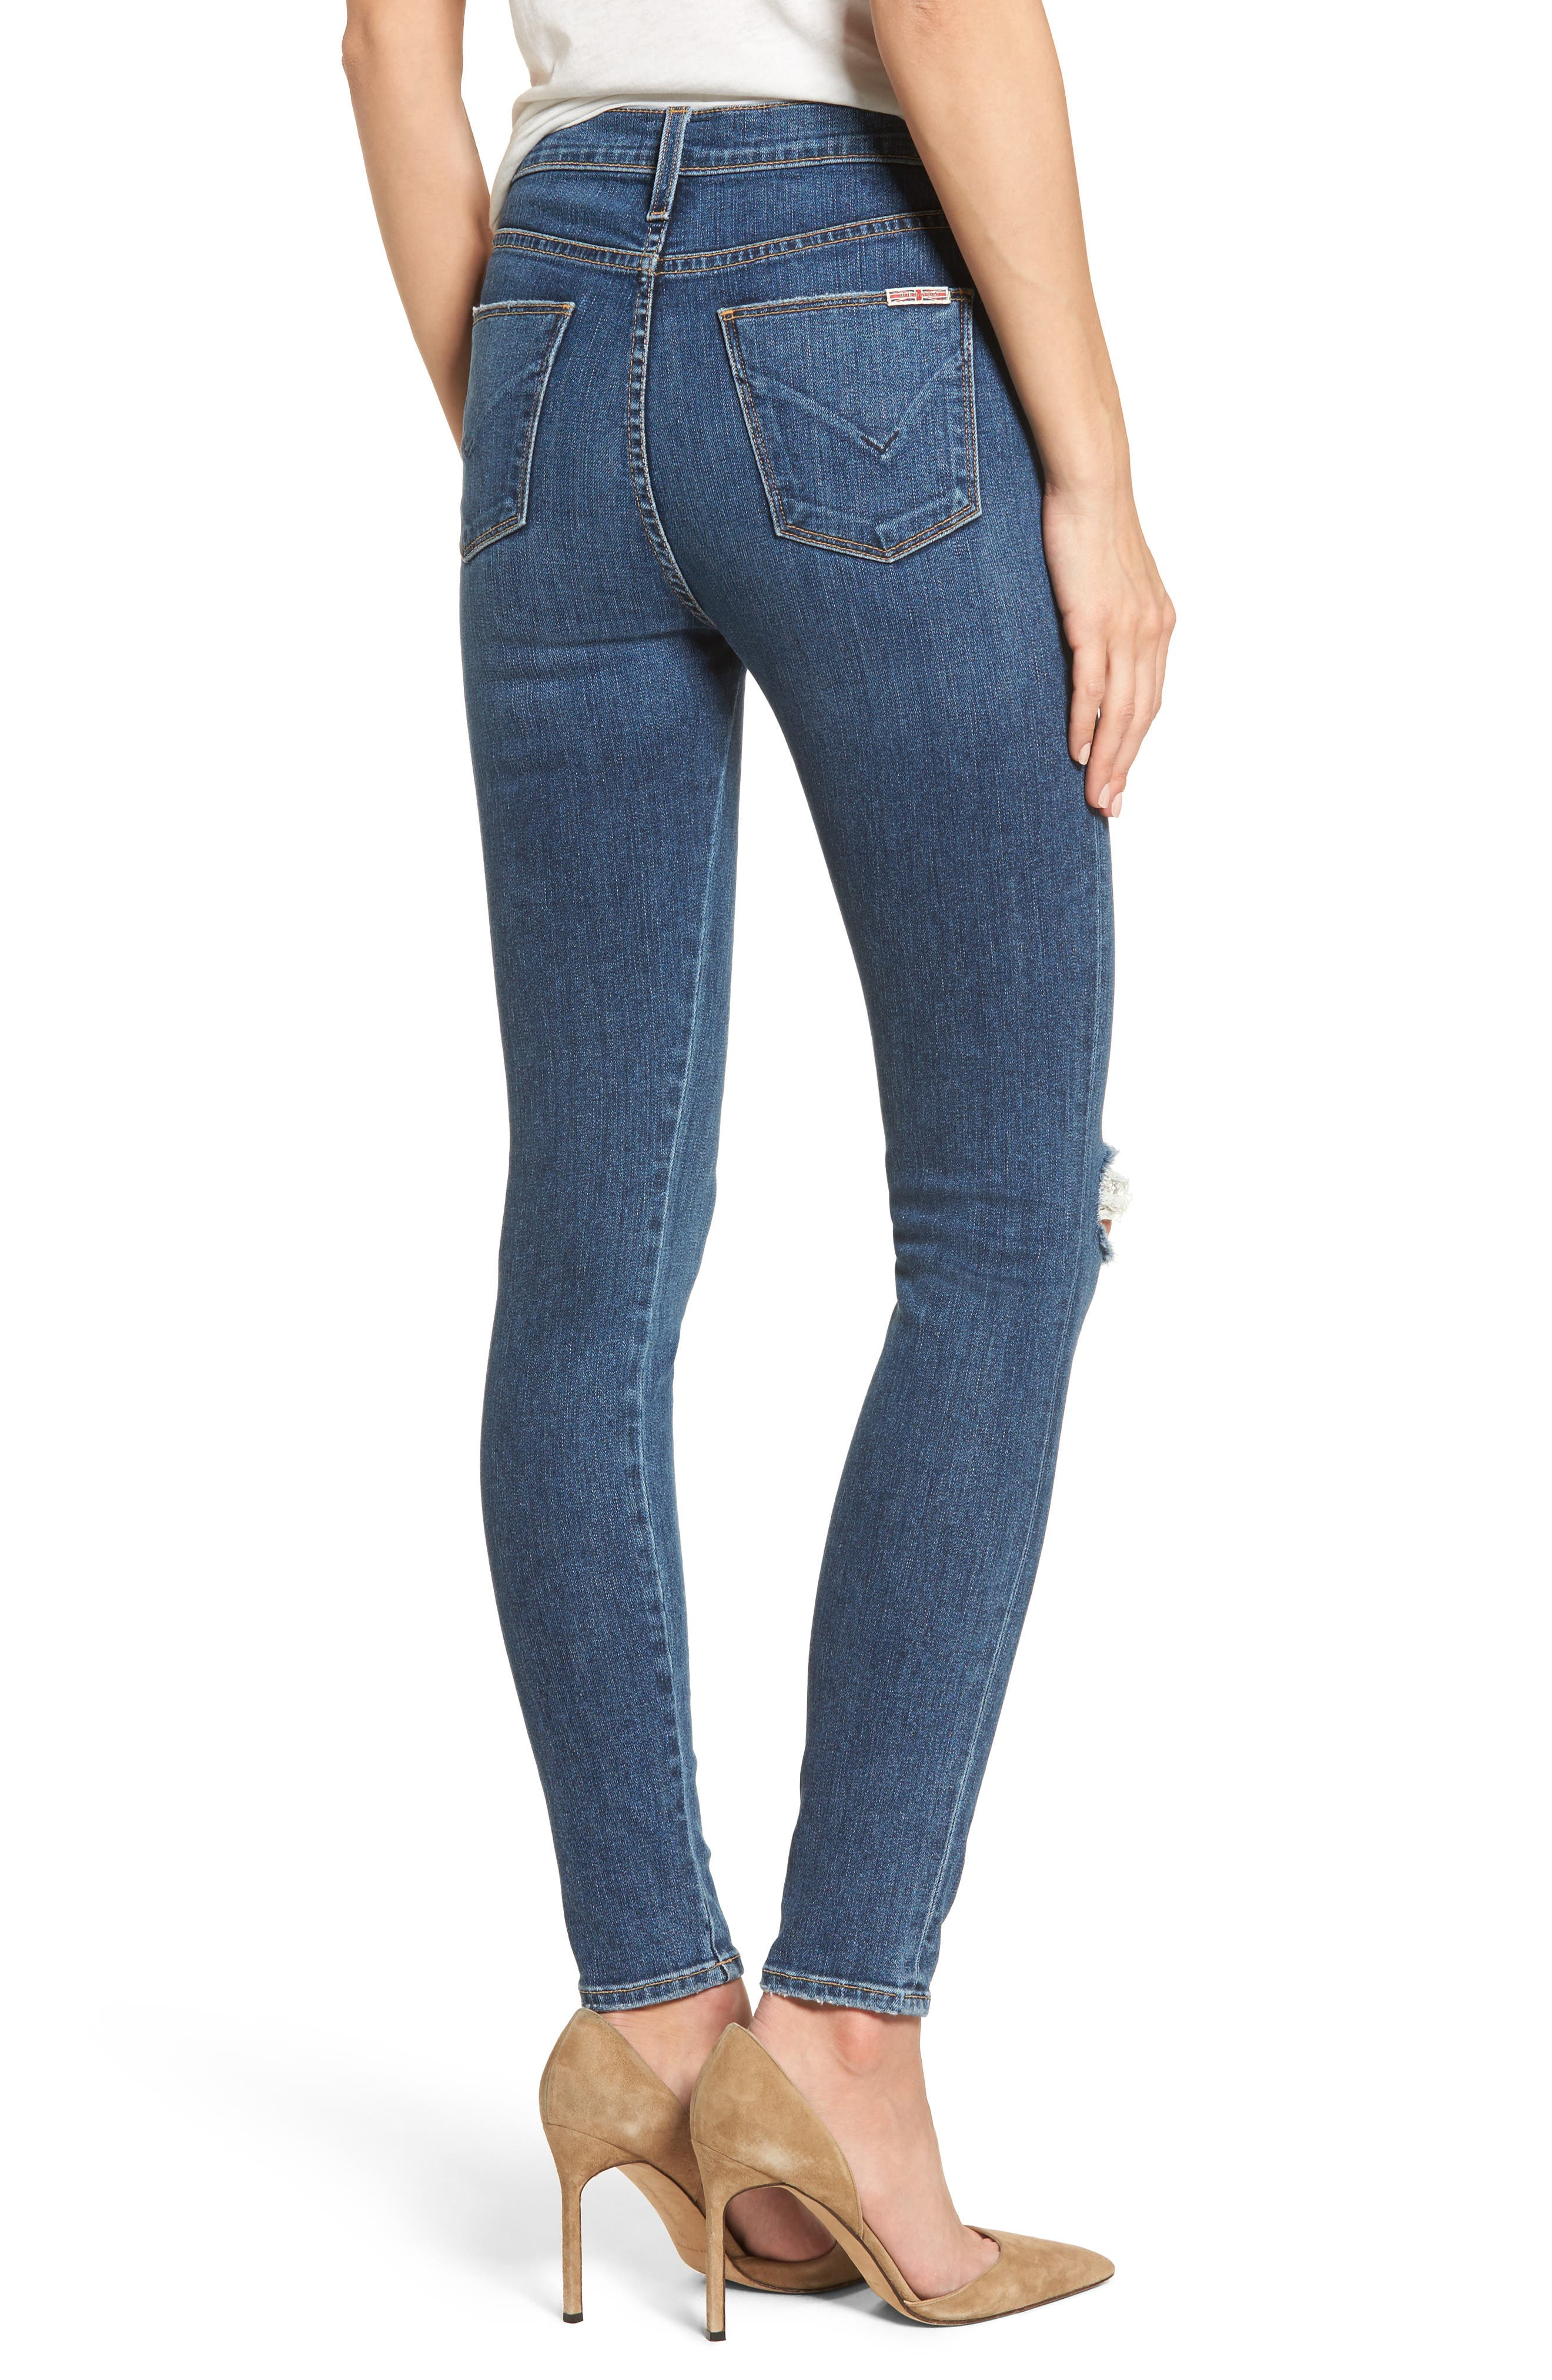 Bullocks Lace-Up High Waist Super Skinny Jeans,                             Alternate thumbnail 2, color,                             421